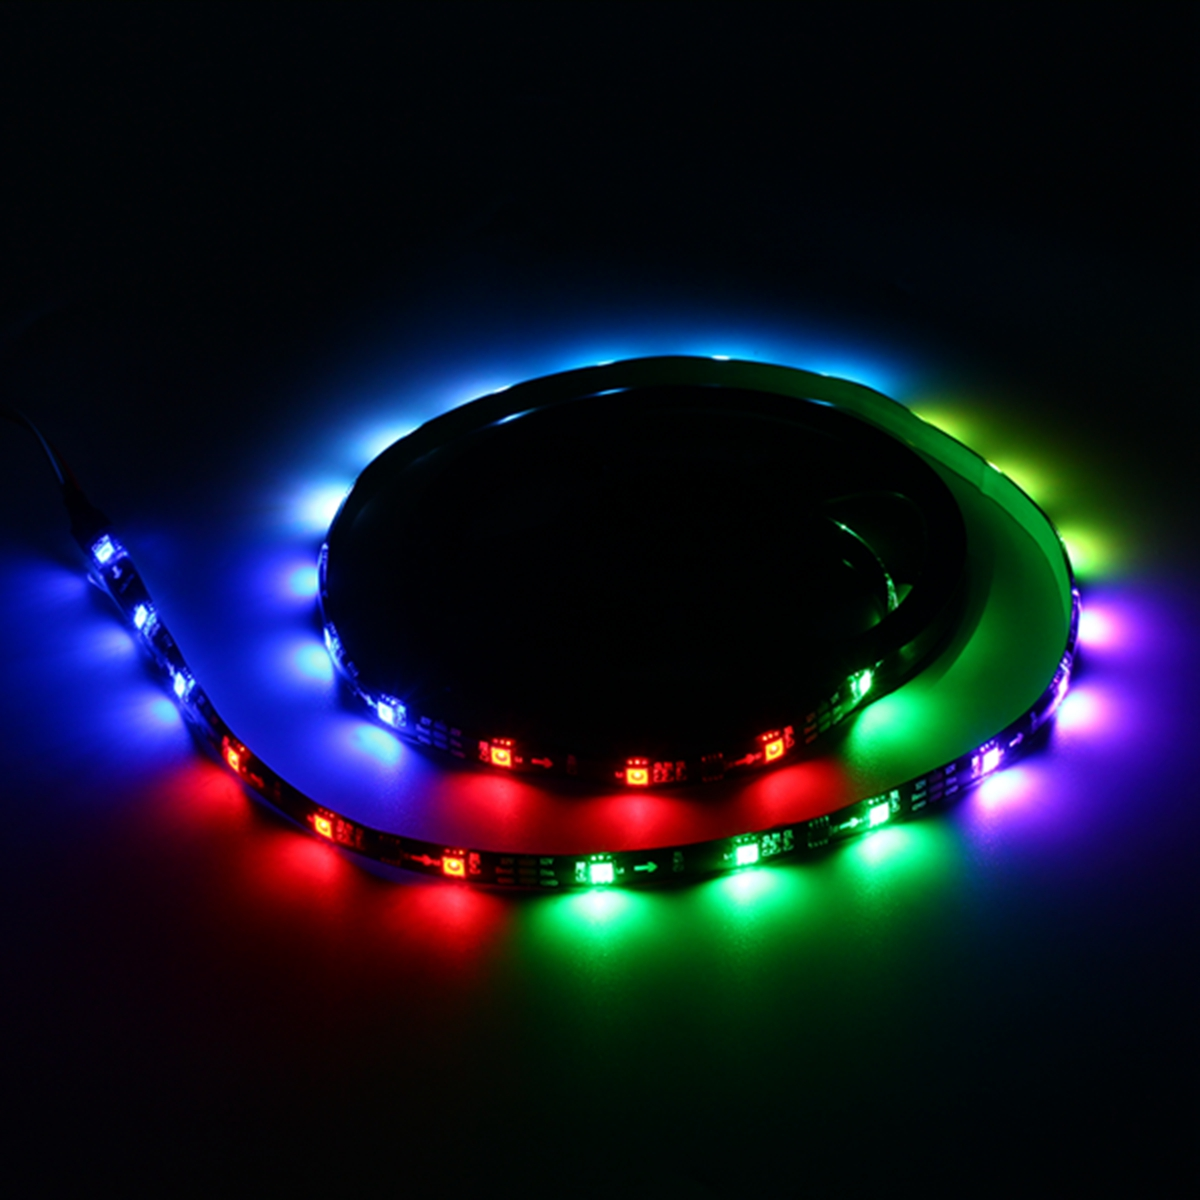 LUSTREON 1M 2M 3M 4M 5M IP65 SMD5050 IC UCS1903 Programmable Magic Color LED Strip Light DC12V